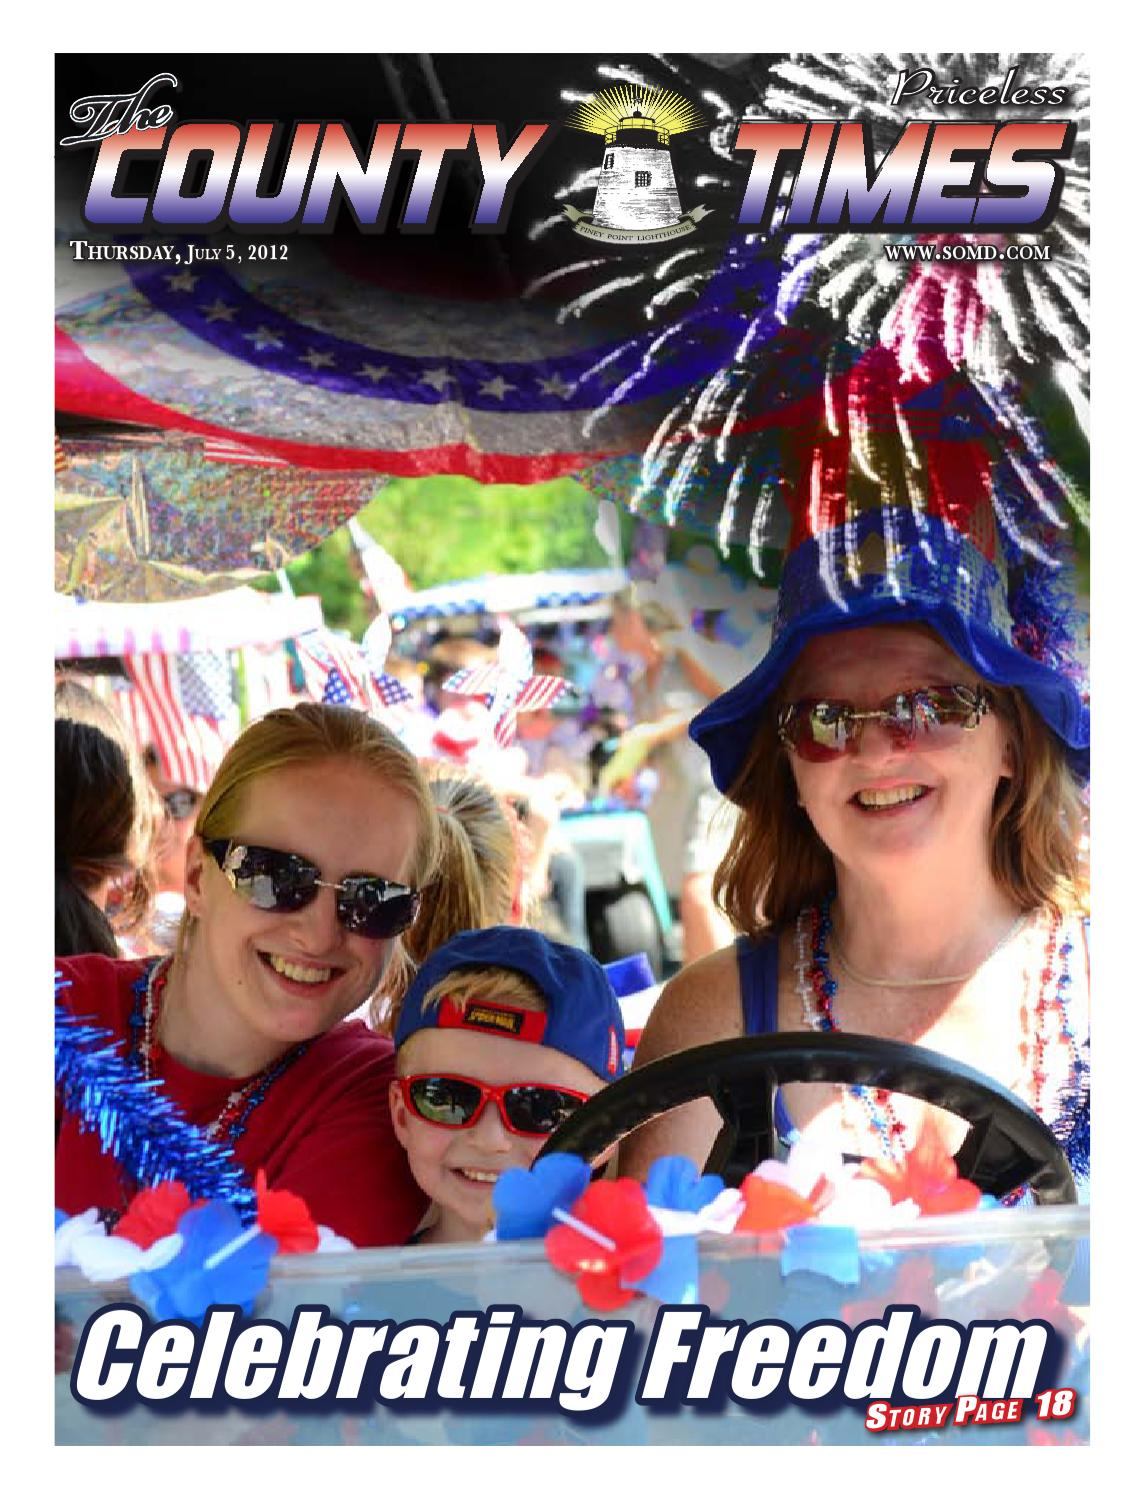 7830ee8c7f71 2012-07-05 The County Times by Southern Maryland Online - issuu